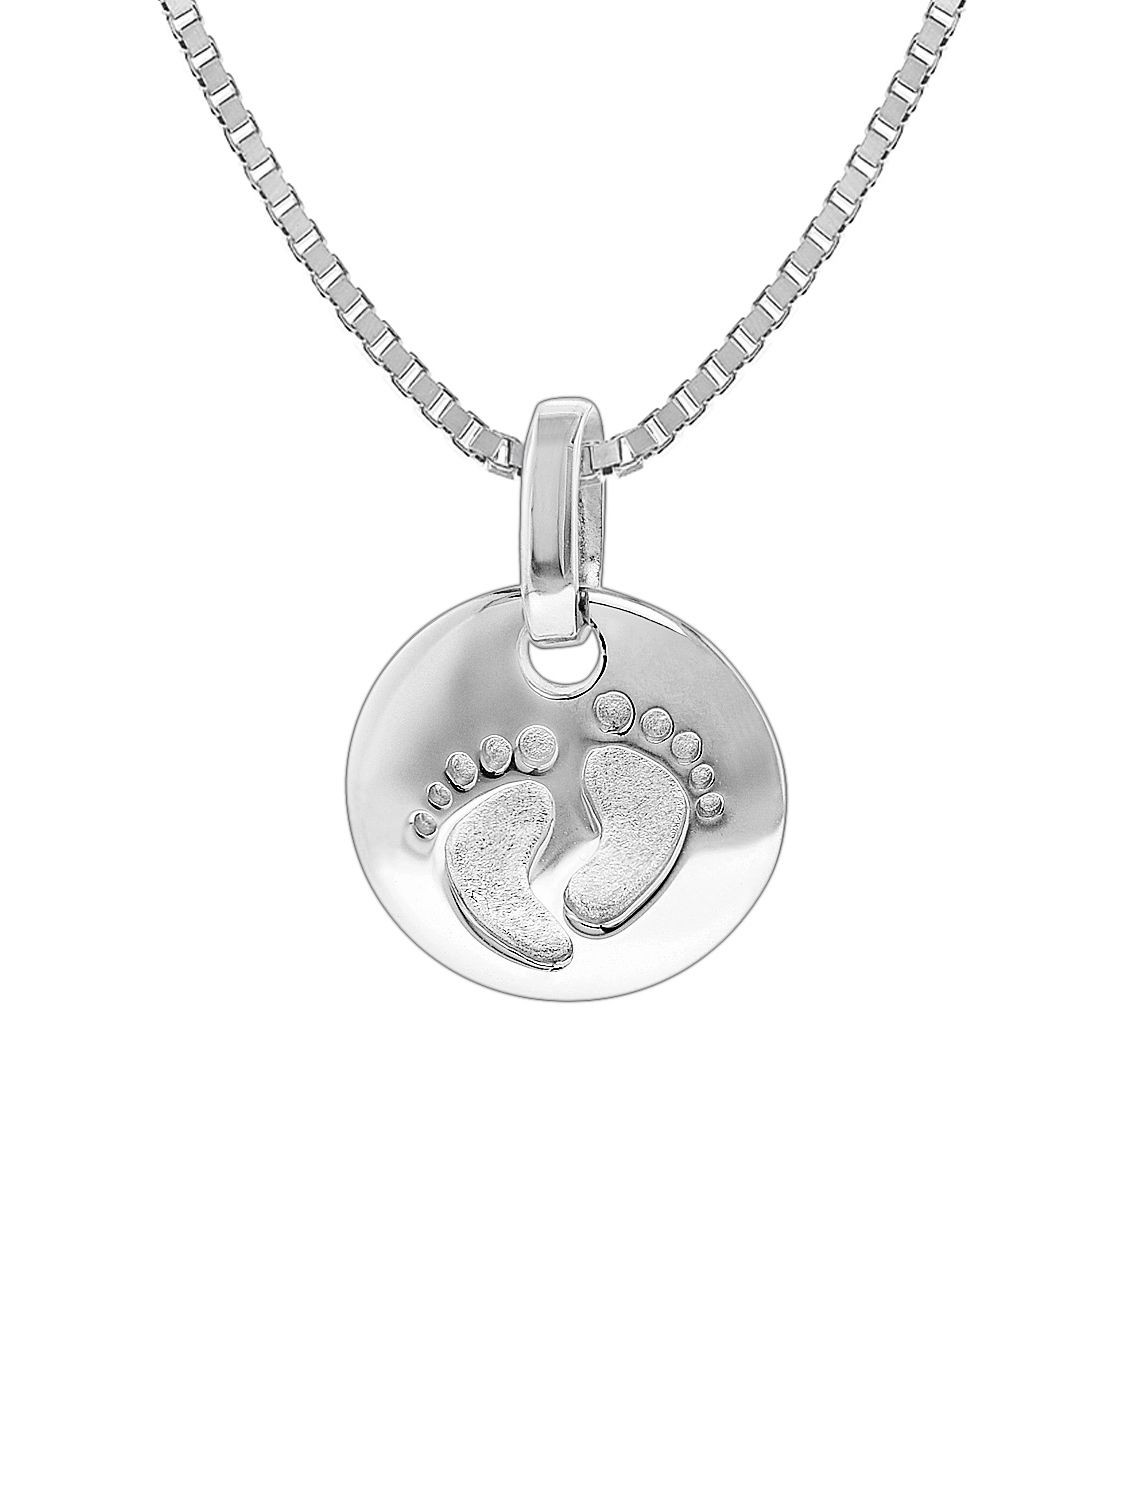 Trendor silver necklace with baby footprint pendant 35860 trendor 35860 silver necklace with baby footprint pendant image 1 aloadofball Choice Image